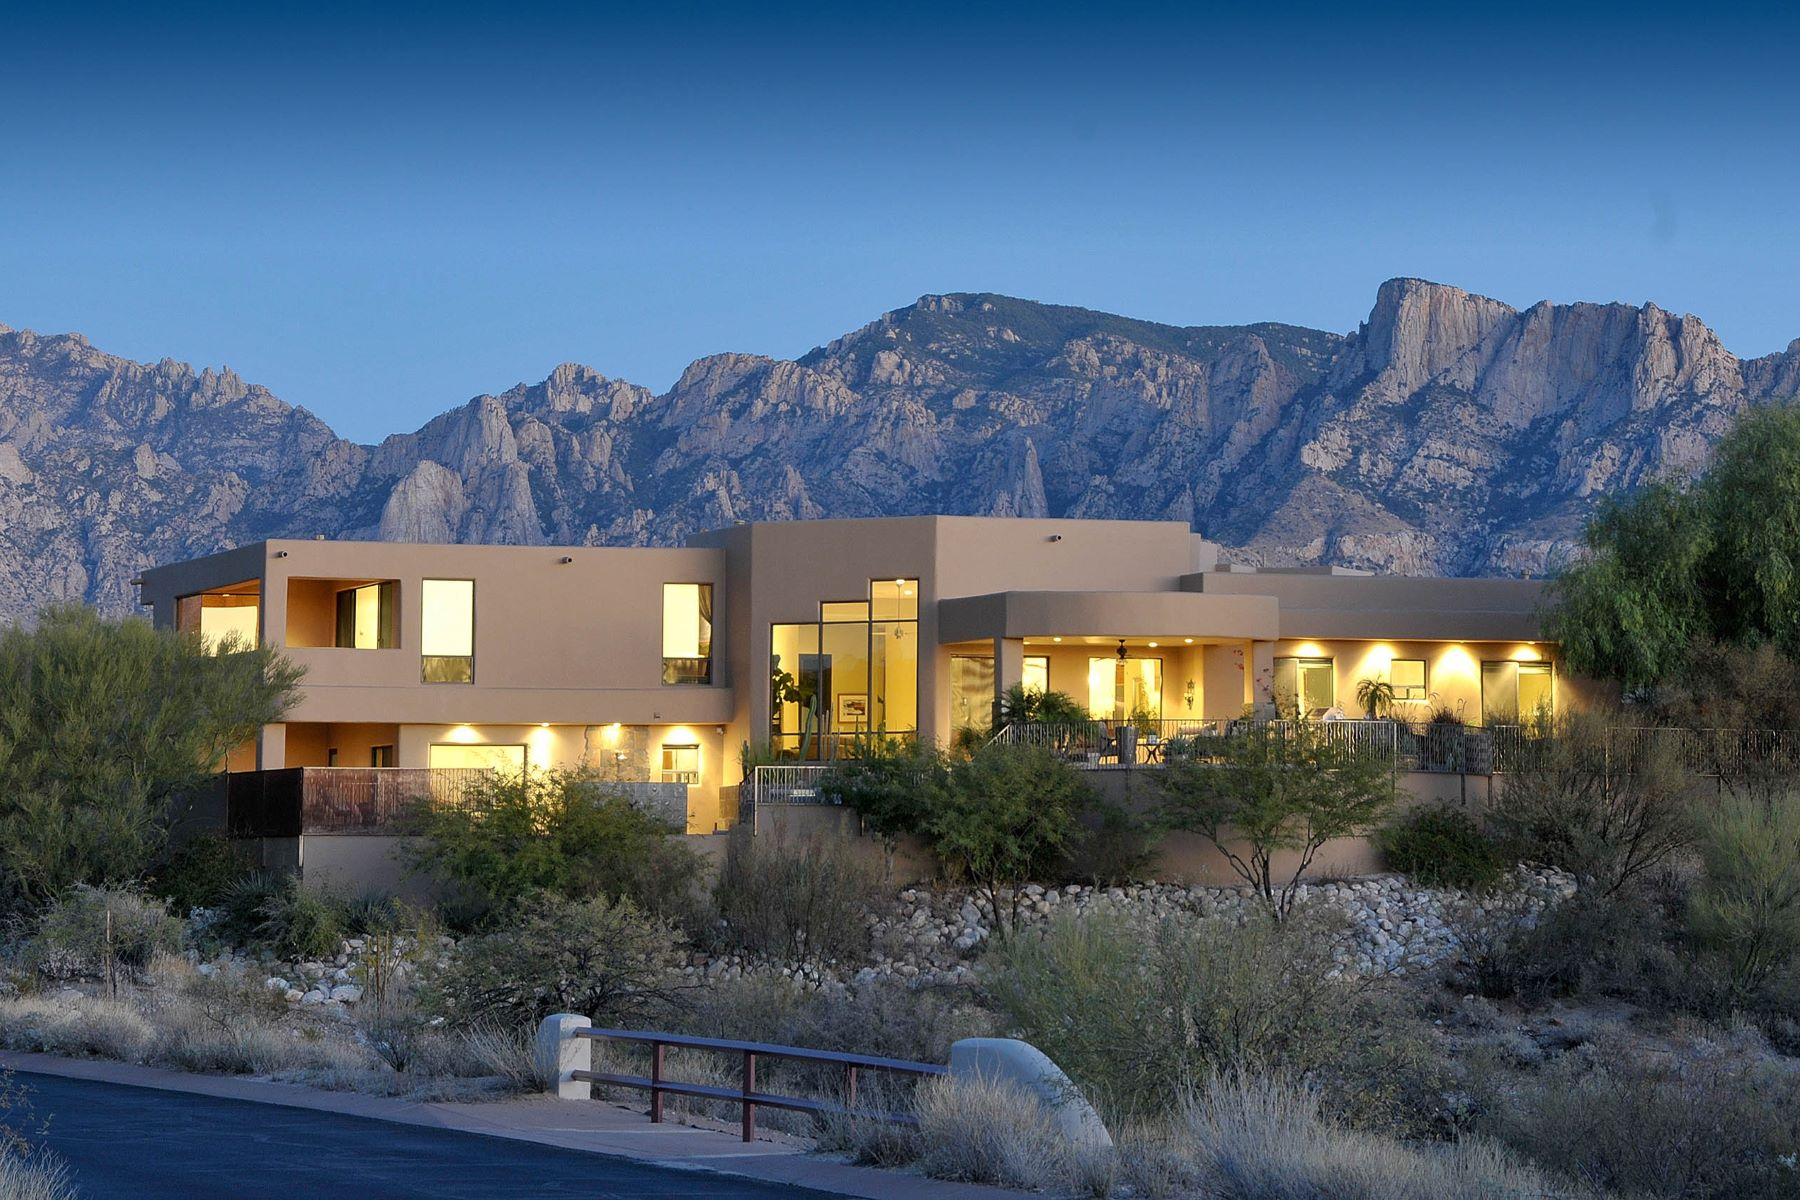 단독 가정 주택 용 매매 에 Stunning Desert Contemporary Ultra-Custom Residence 12137 N Solitude Ridge Place Oro Valley, 아리조나, 85755 미국